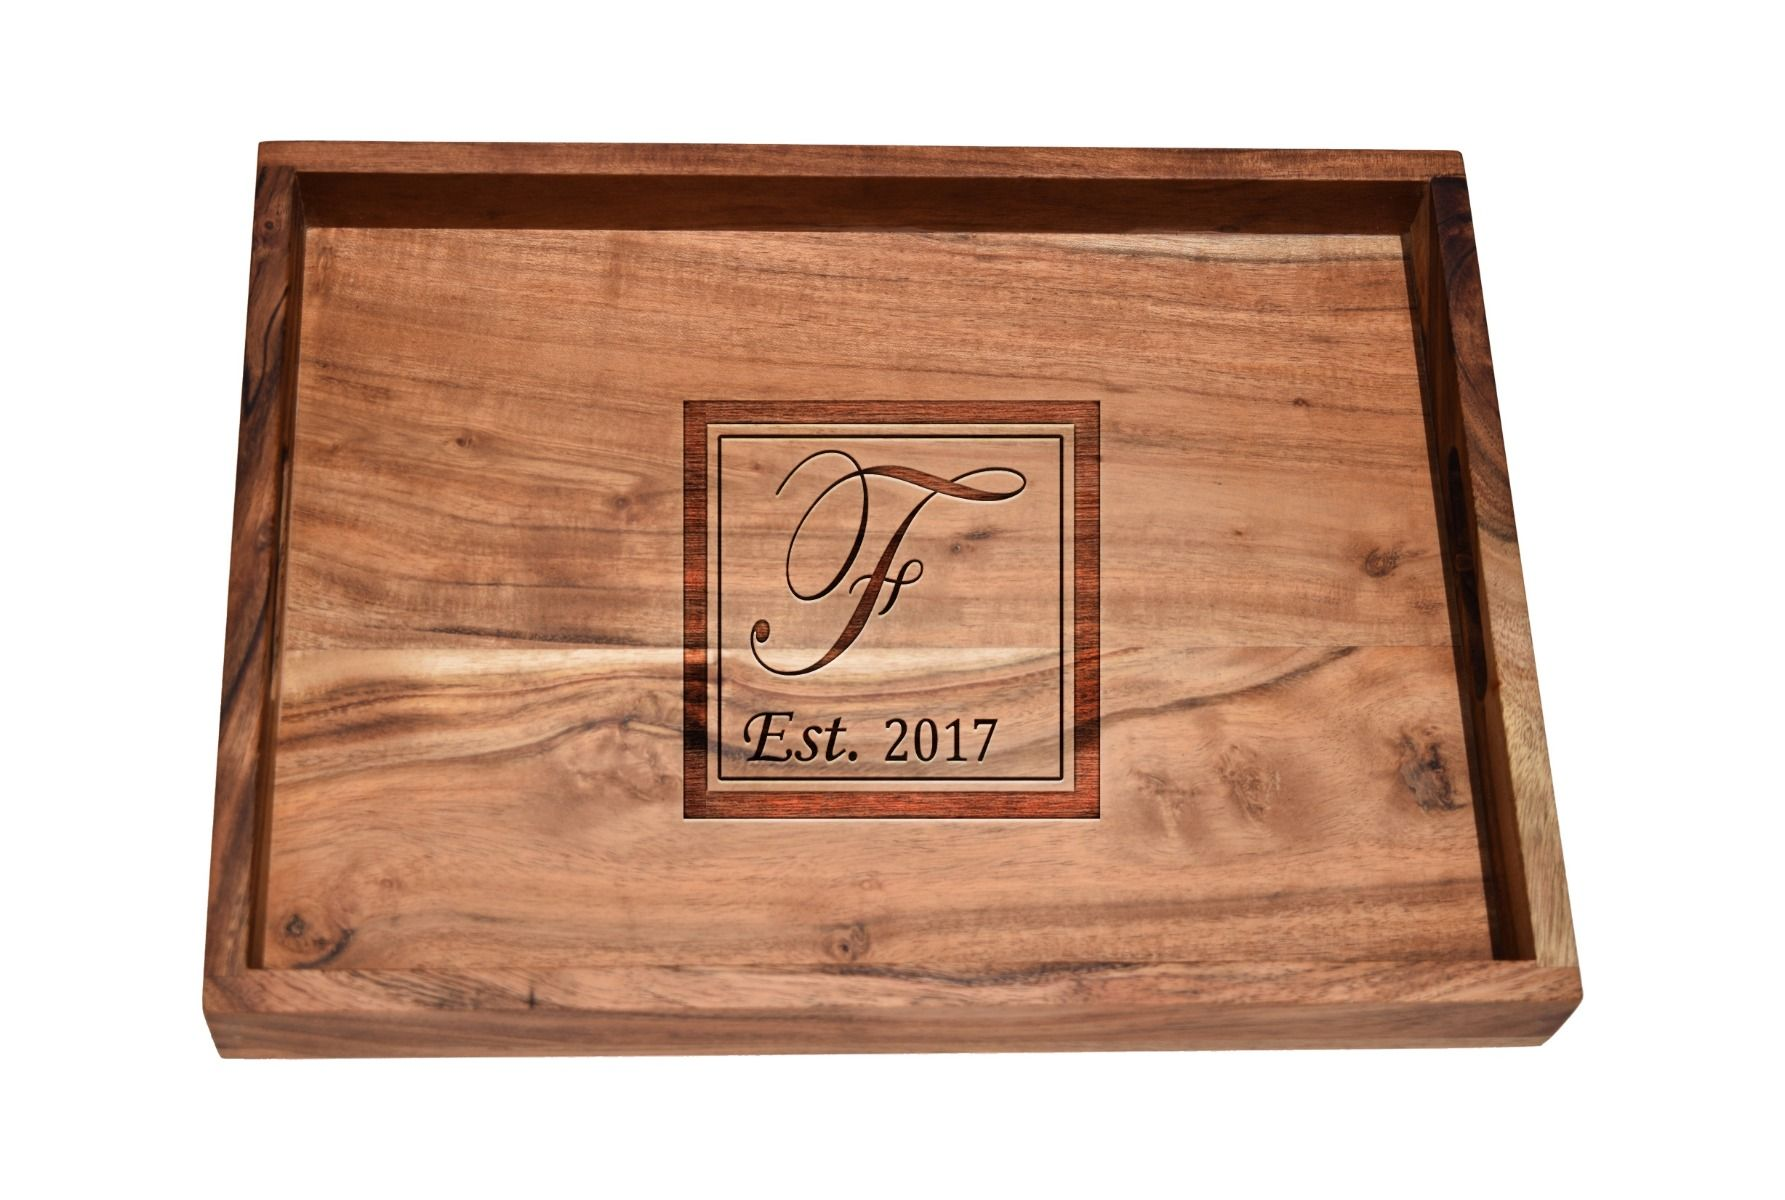 Home bar tray with monogram Initial design